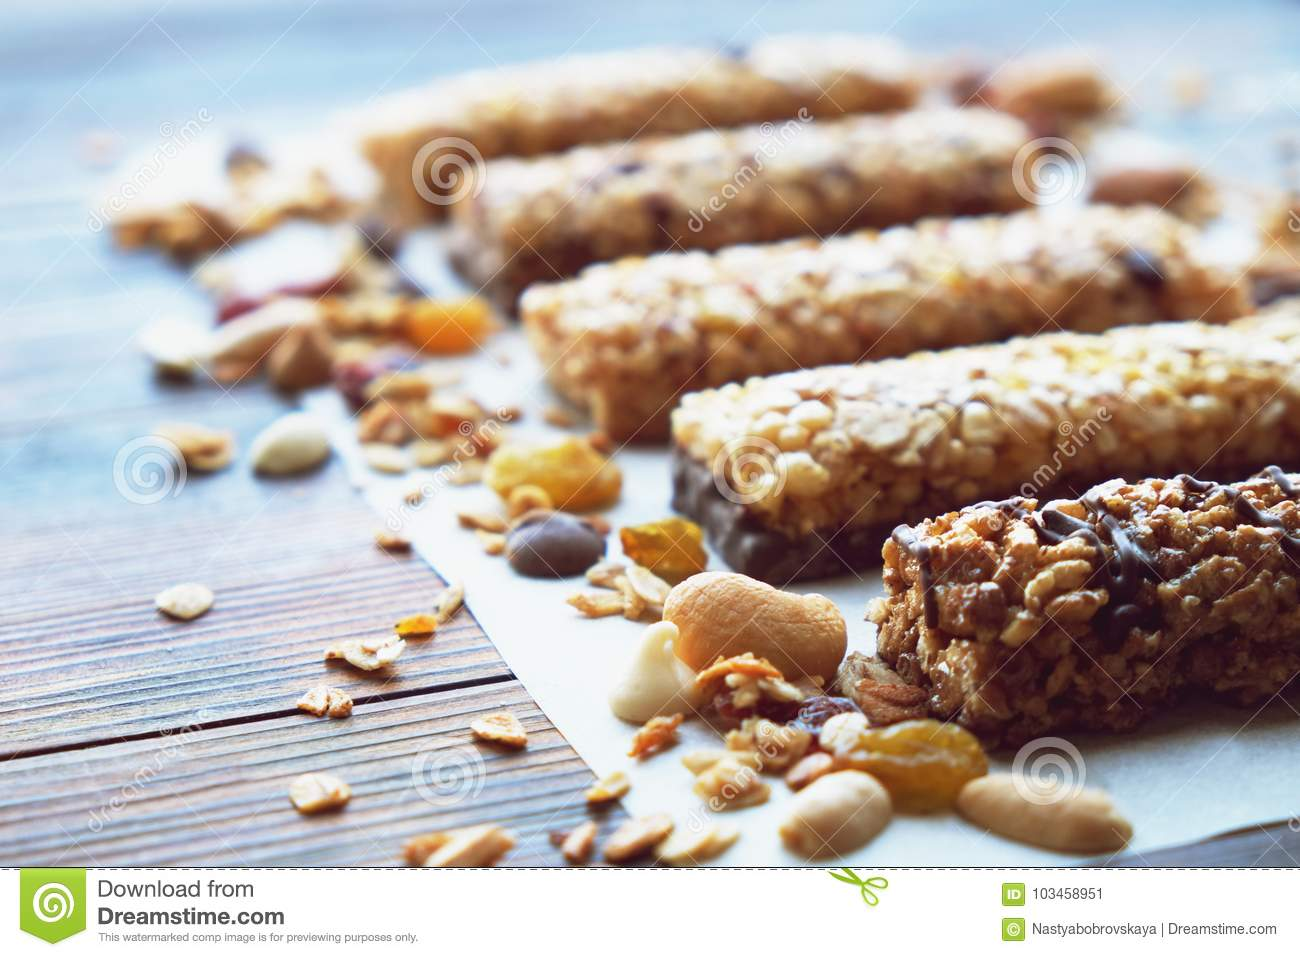 Healthy granola bars with dried fruits, nuts and honey on wooden background.